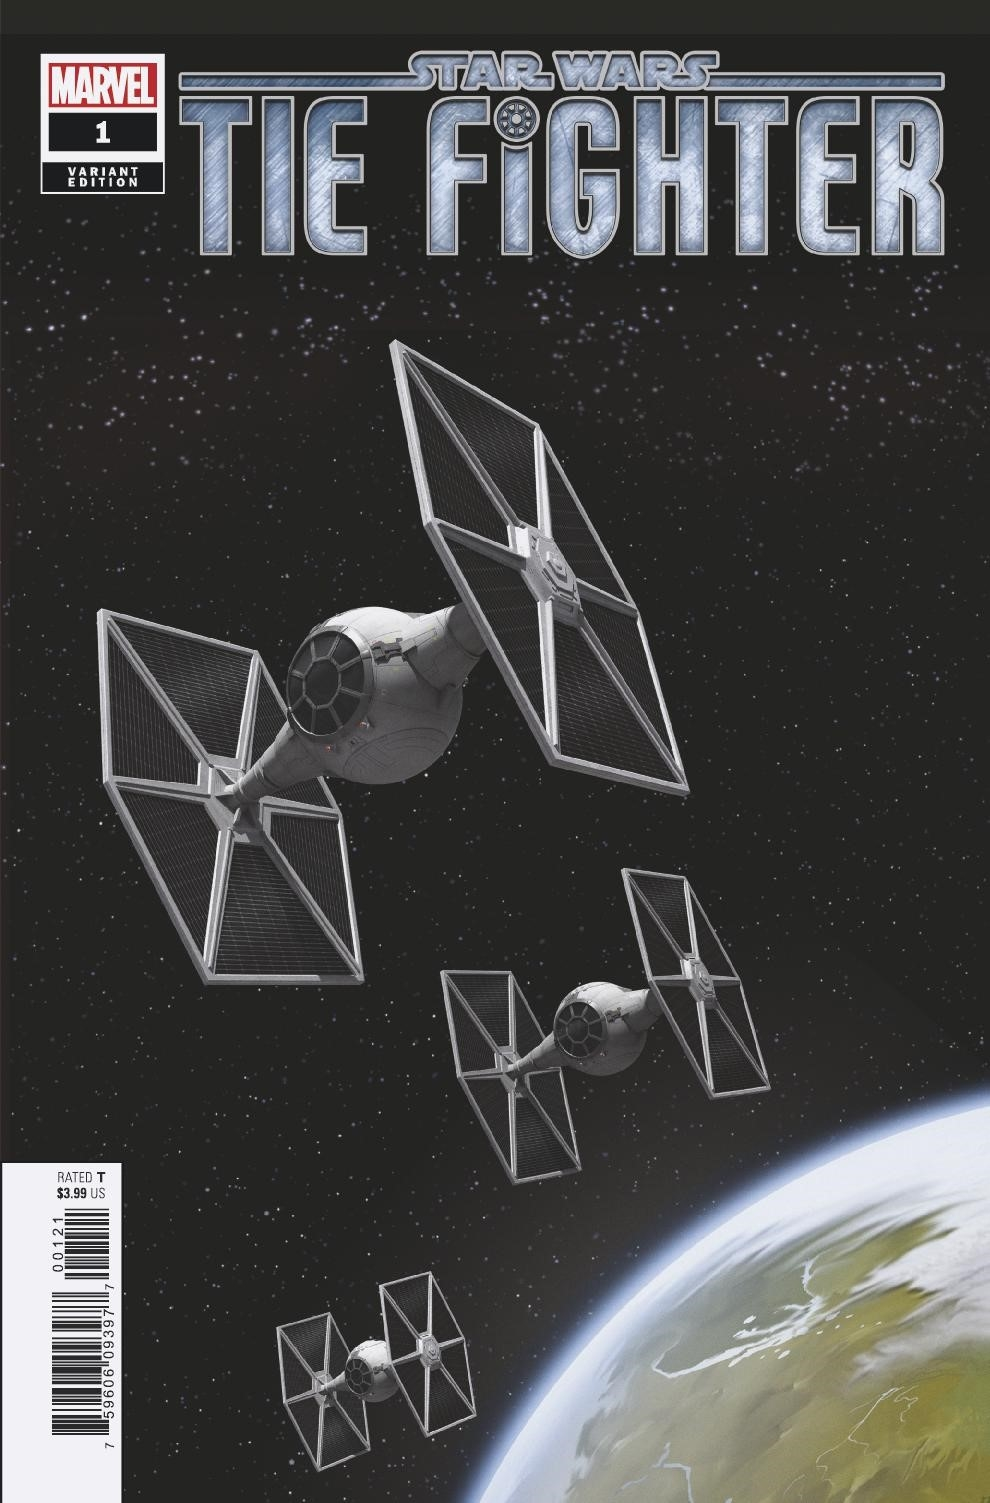 STAR WARS TIE FIGHTER #1 (OF 5) MOVIE VAR